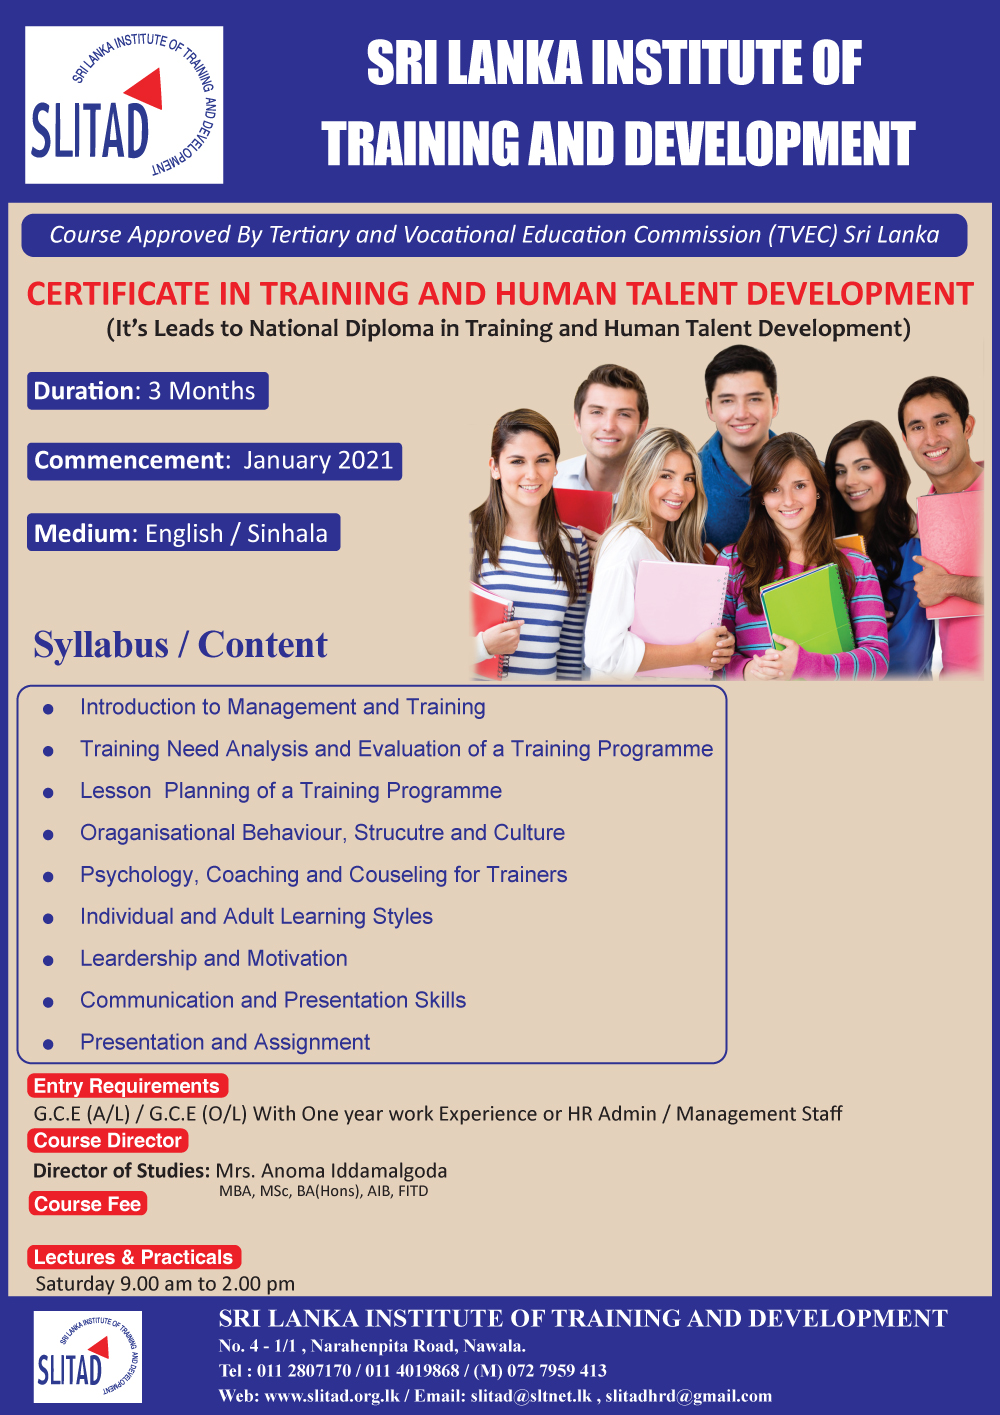 Certificate in Training and Human Talent Development